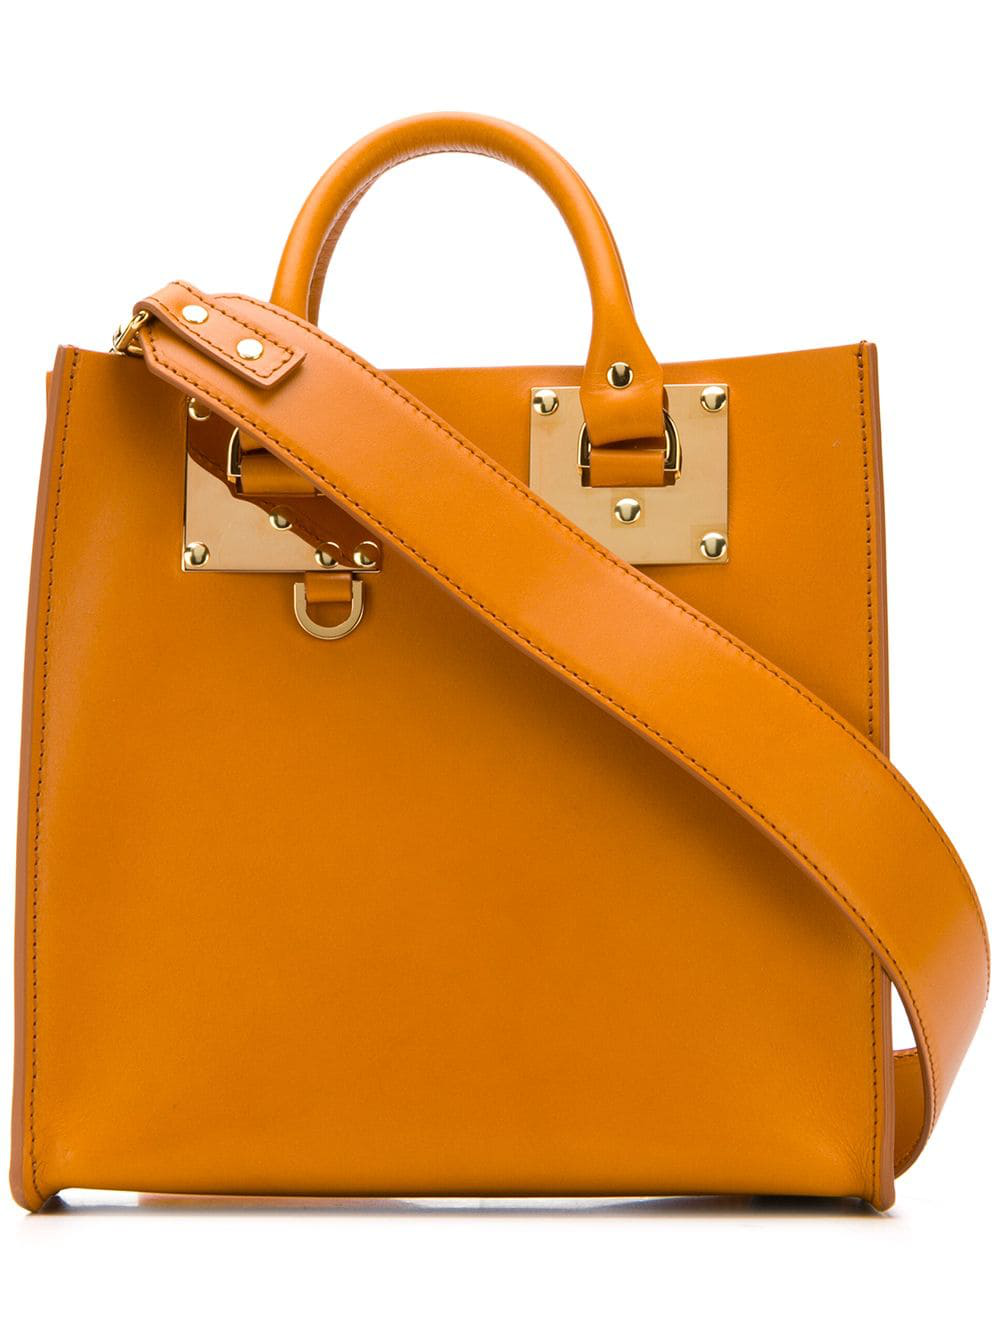 Sophie Hulme Albion Tote Bag - Orange